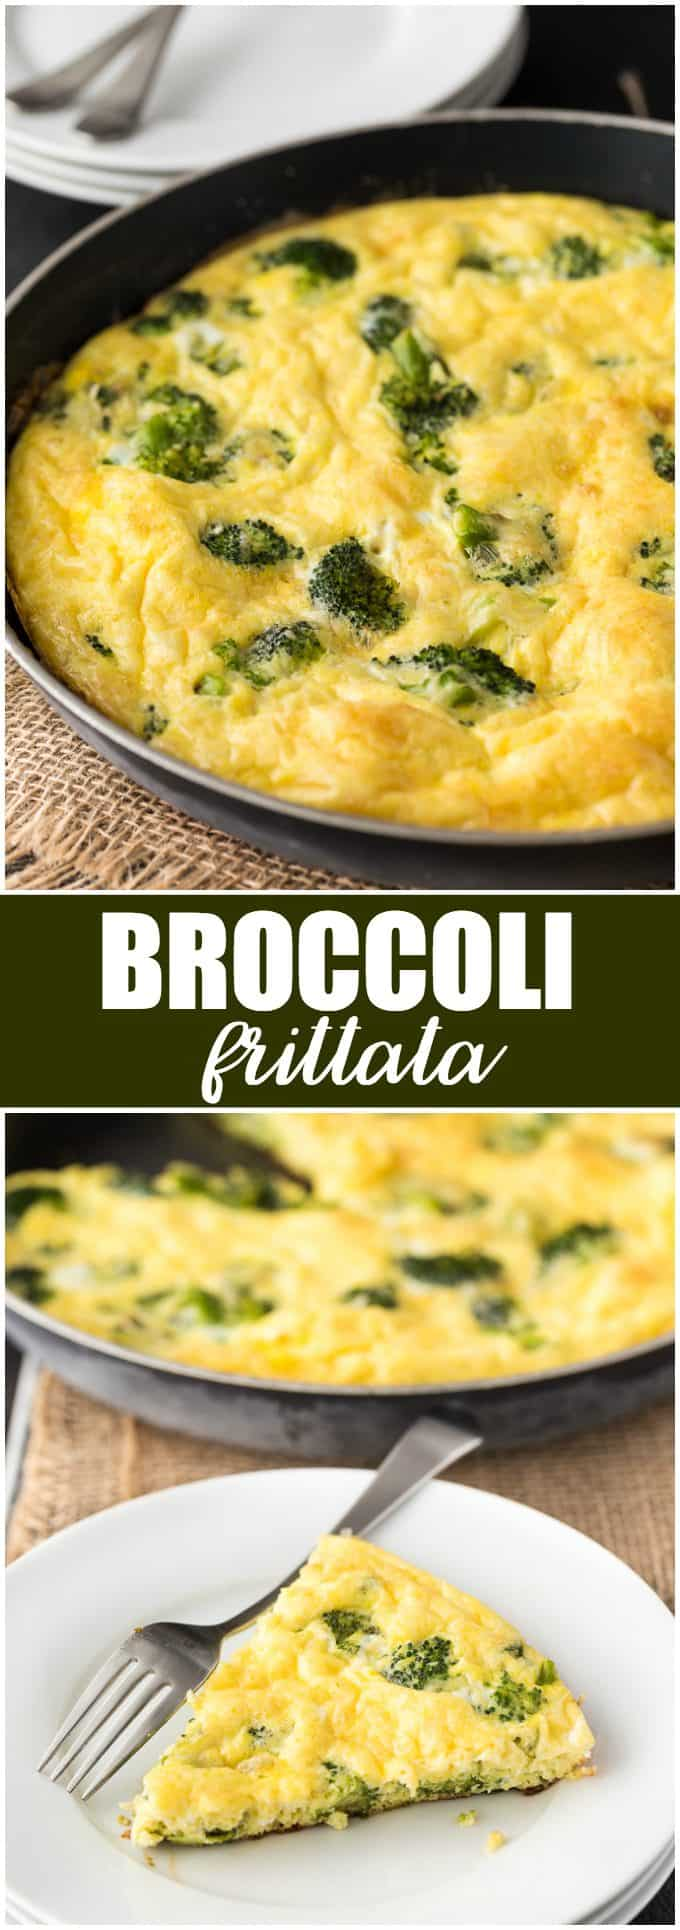 Broccoli Frittata - Easy, healthy and great for a low carb lifestyle.